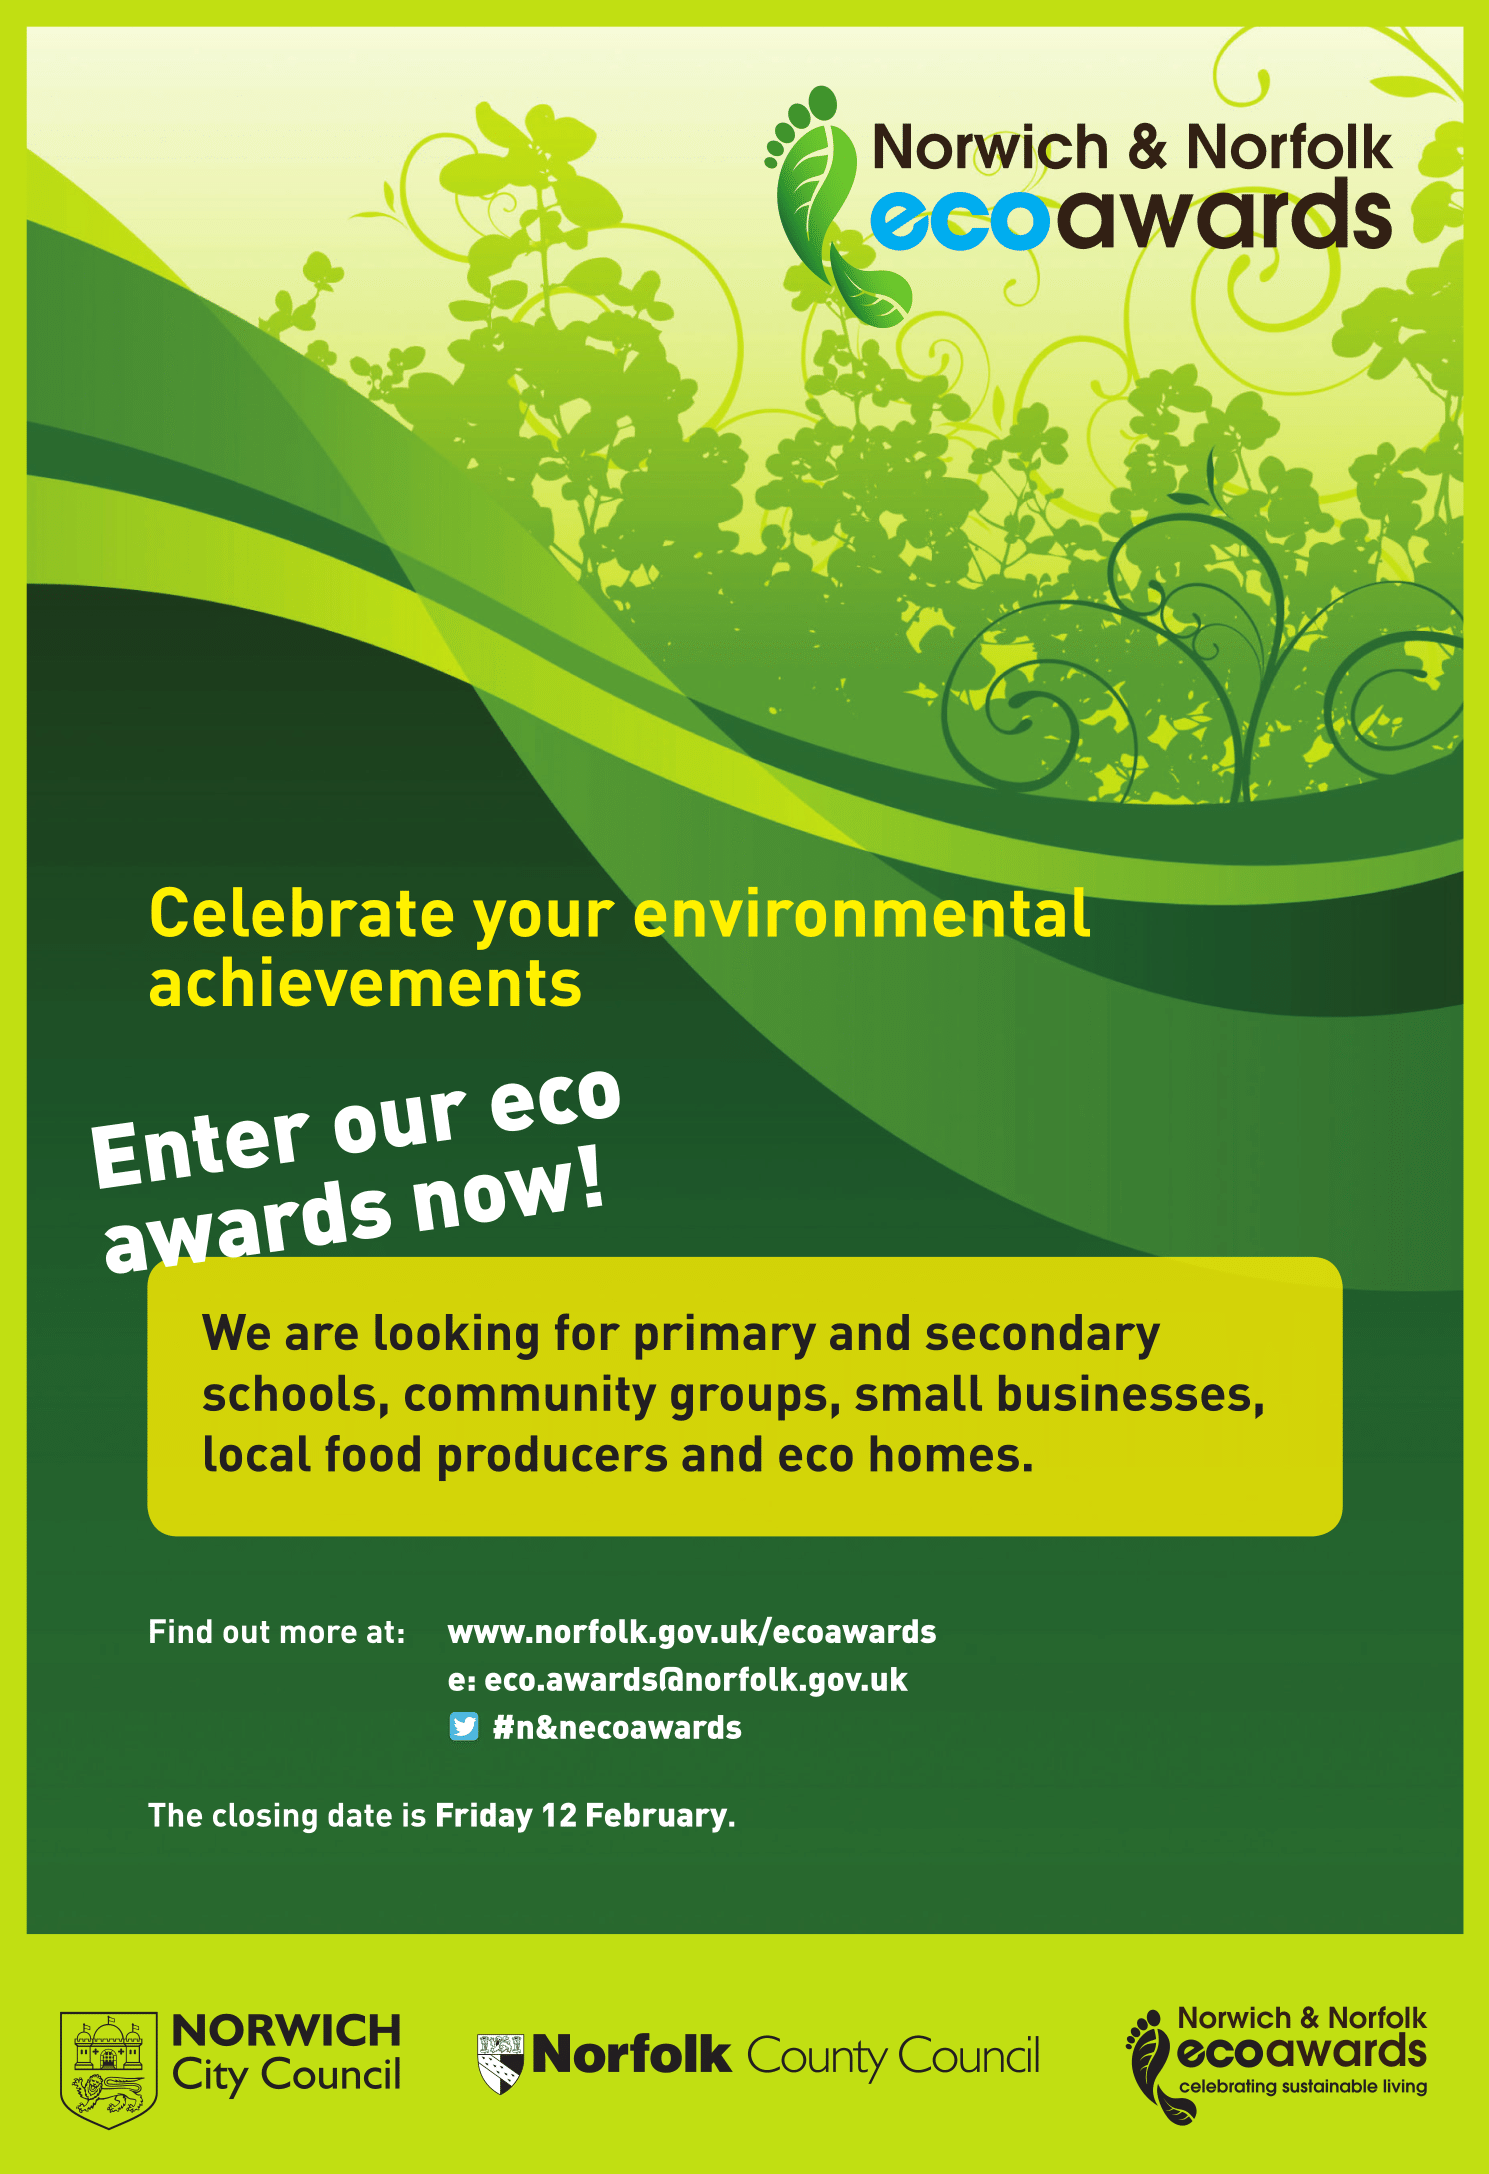 N & N Eco awards 2015-16 Poster